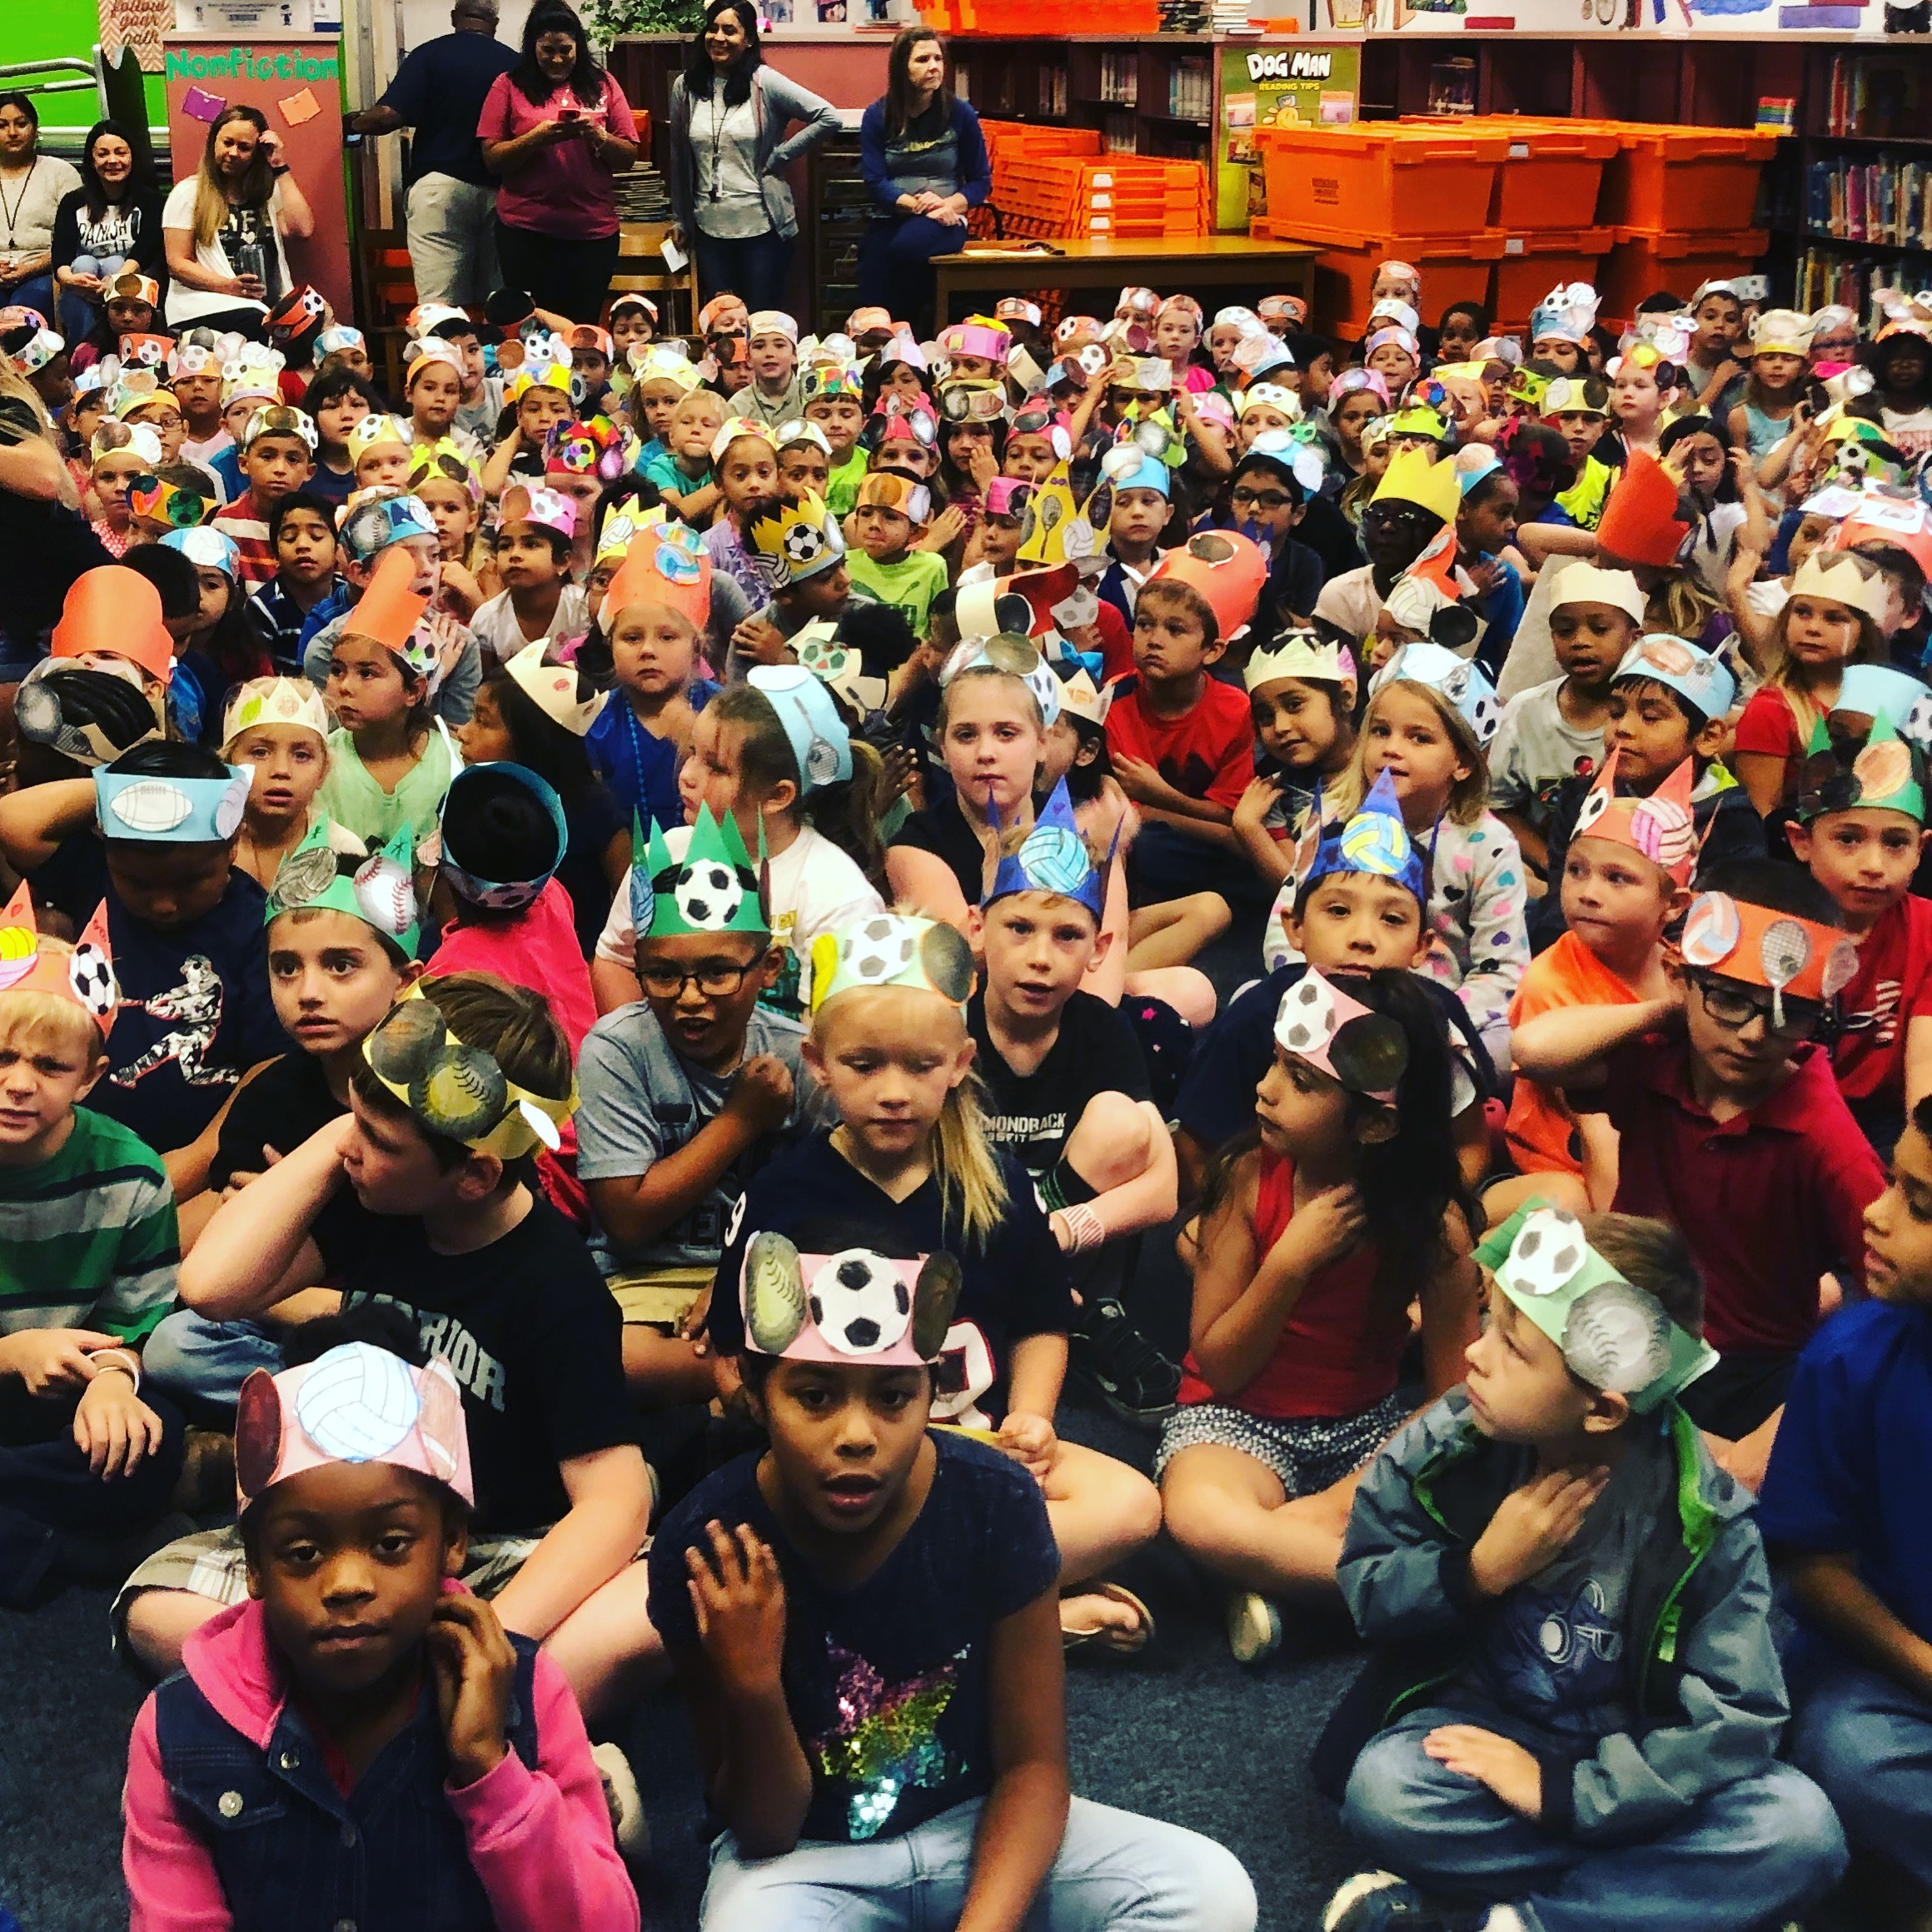 Students in San Antonio, TX with their homemade crowns waiting for Author Shelly Boyum-Breen to speak!